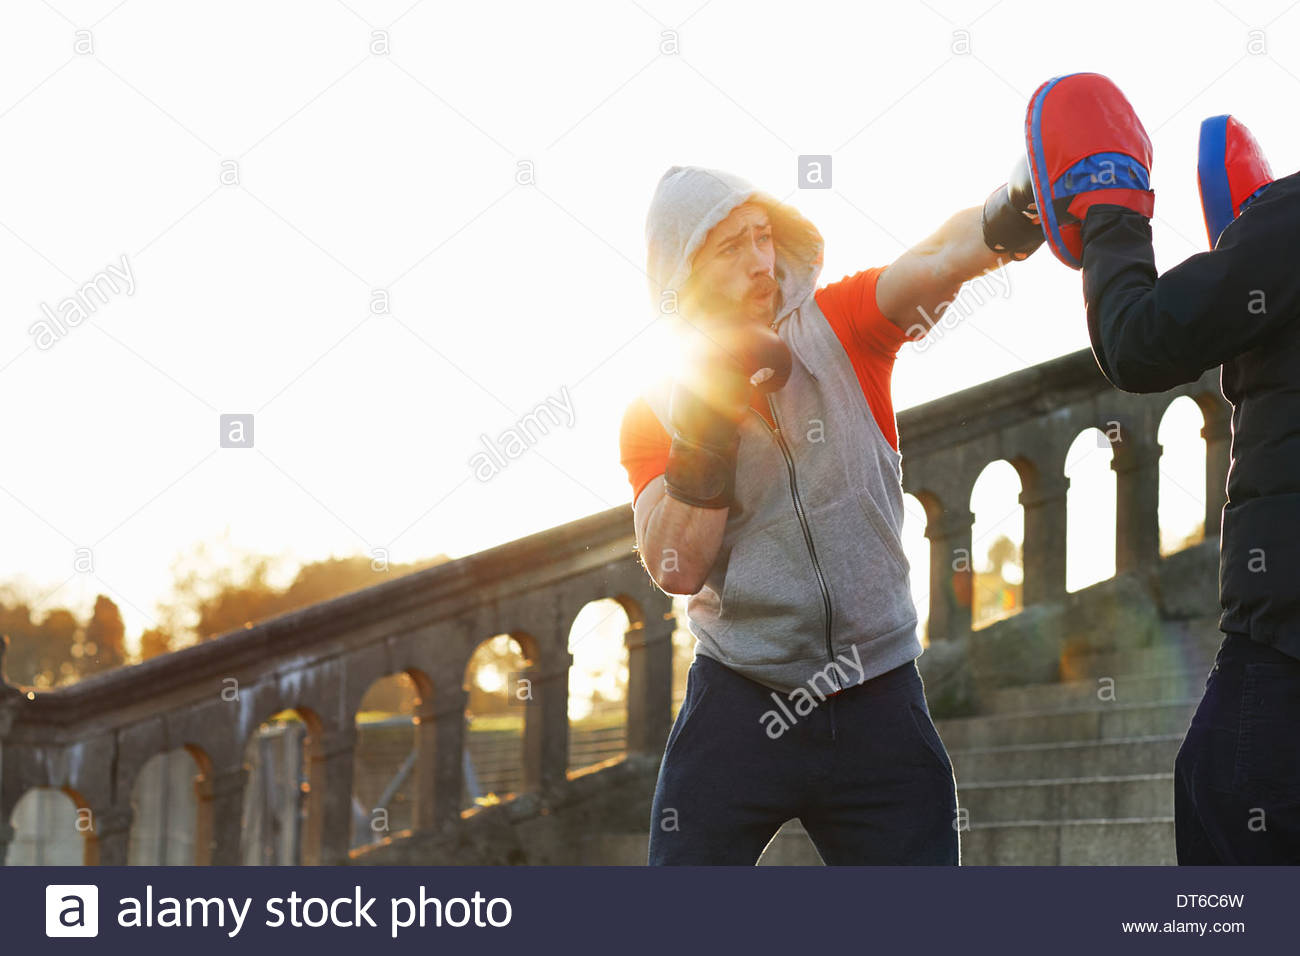 Young man boxing training with teacher - Stock Image